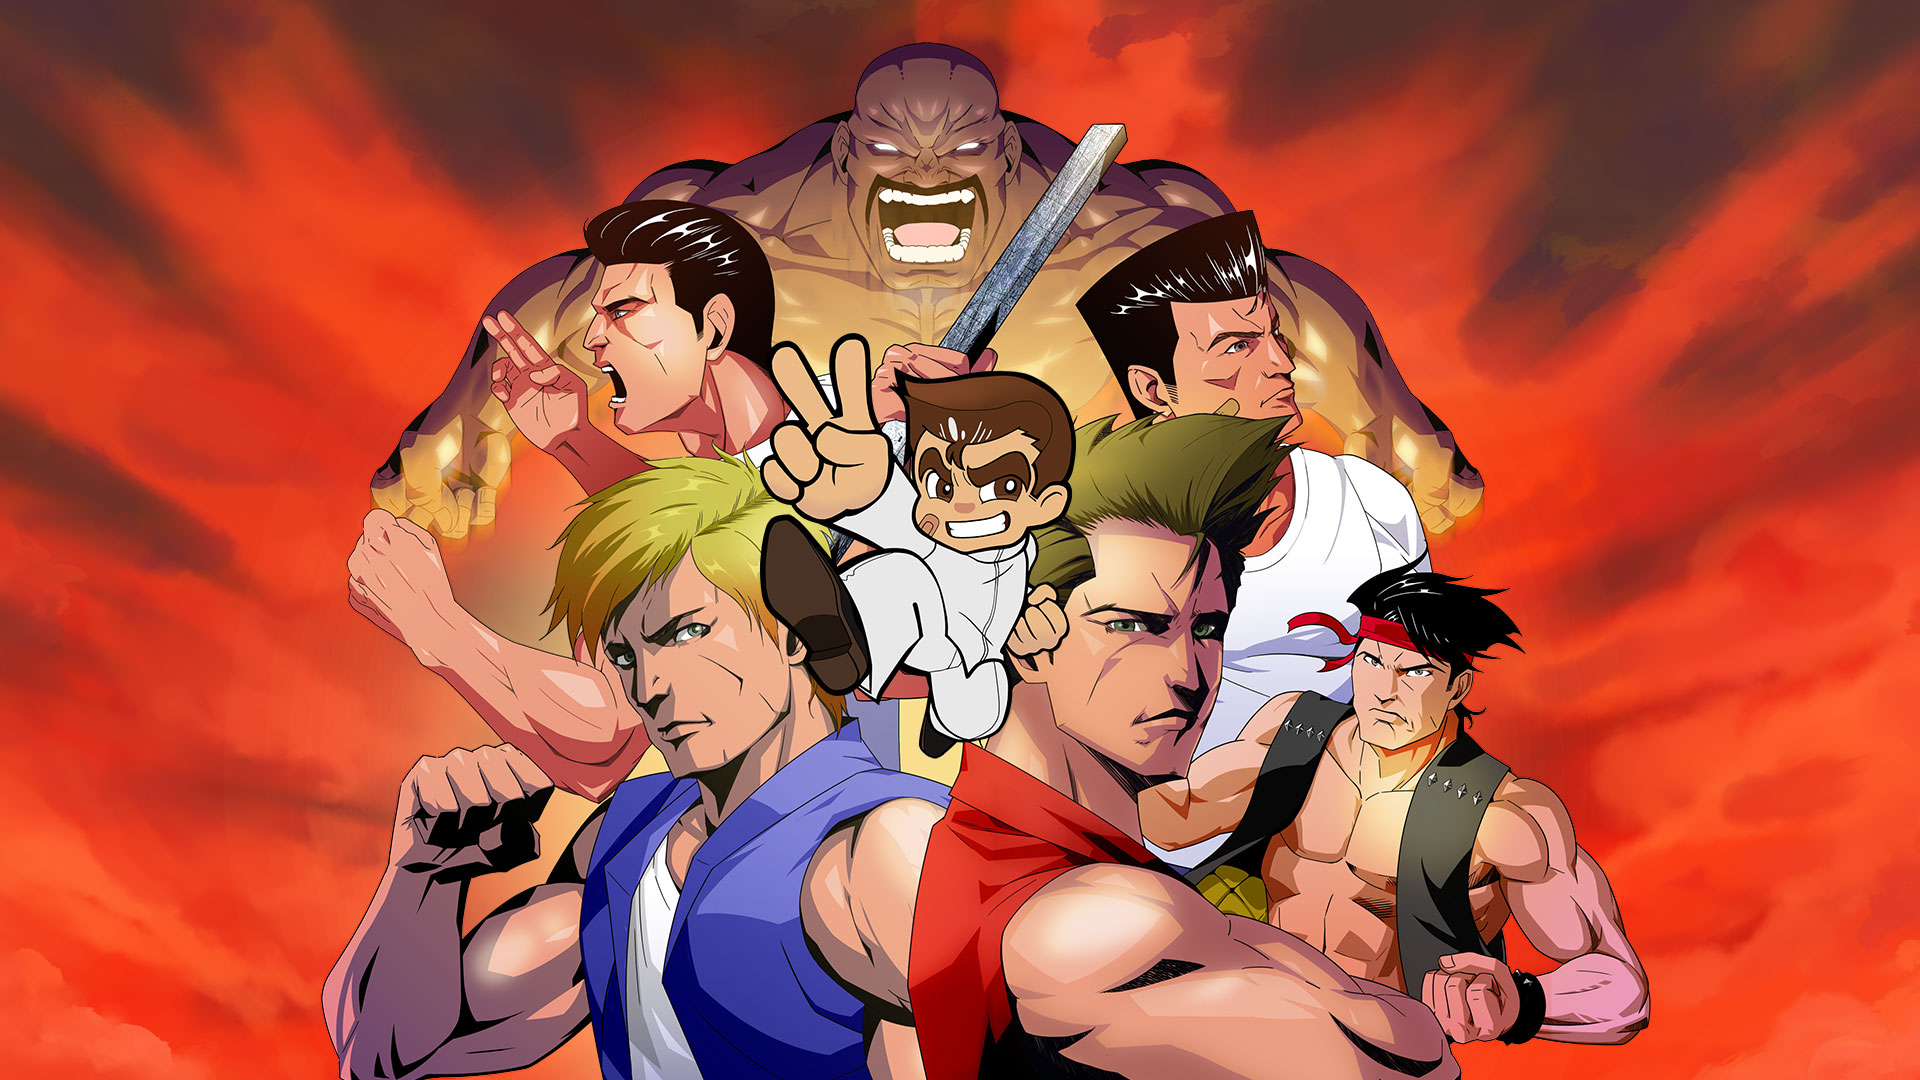 Double Dragon Kunio Kun Retro Brawler Bundle Brings 18 Classic